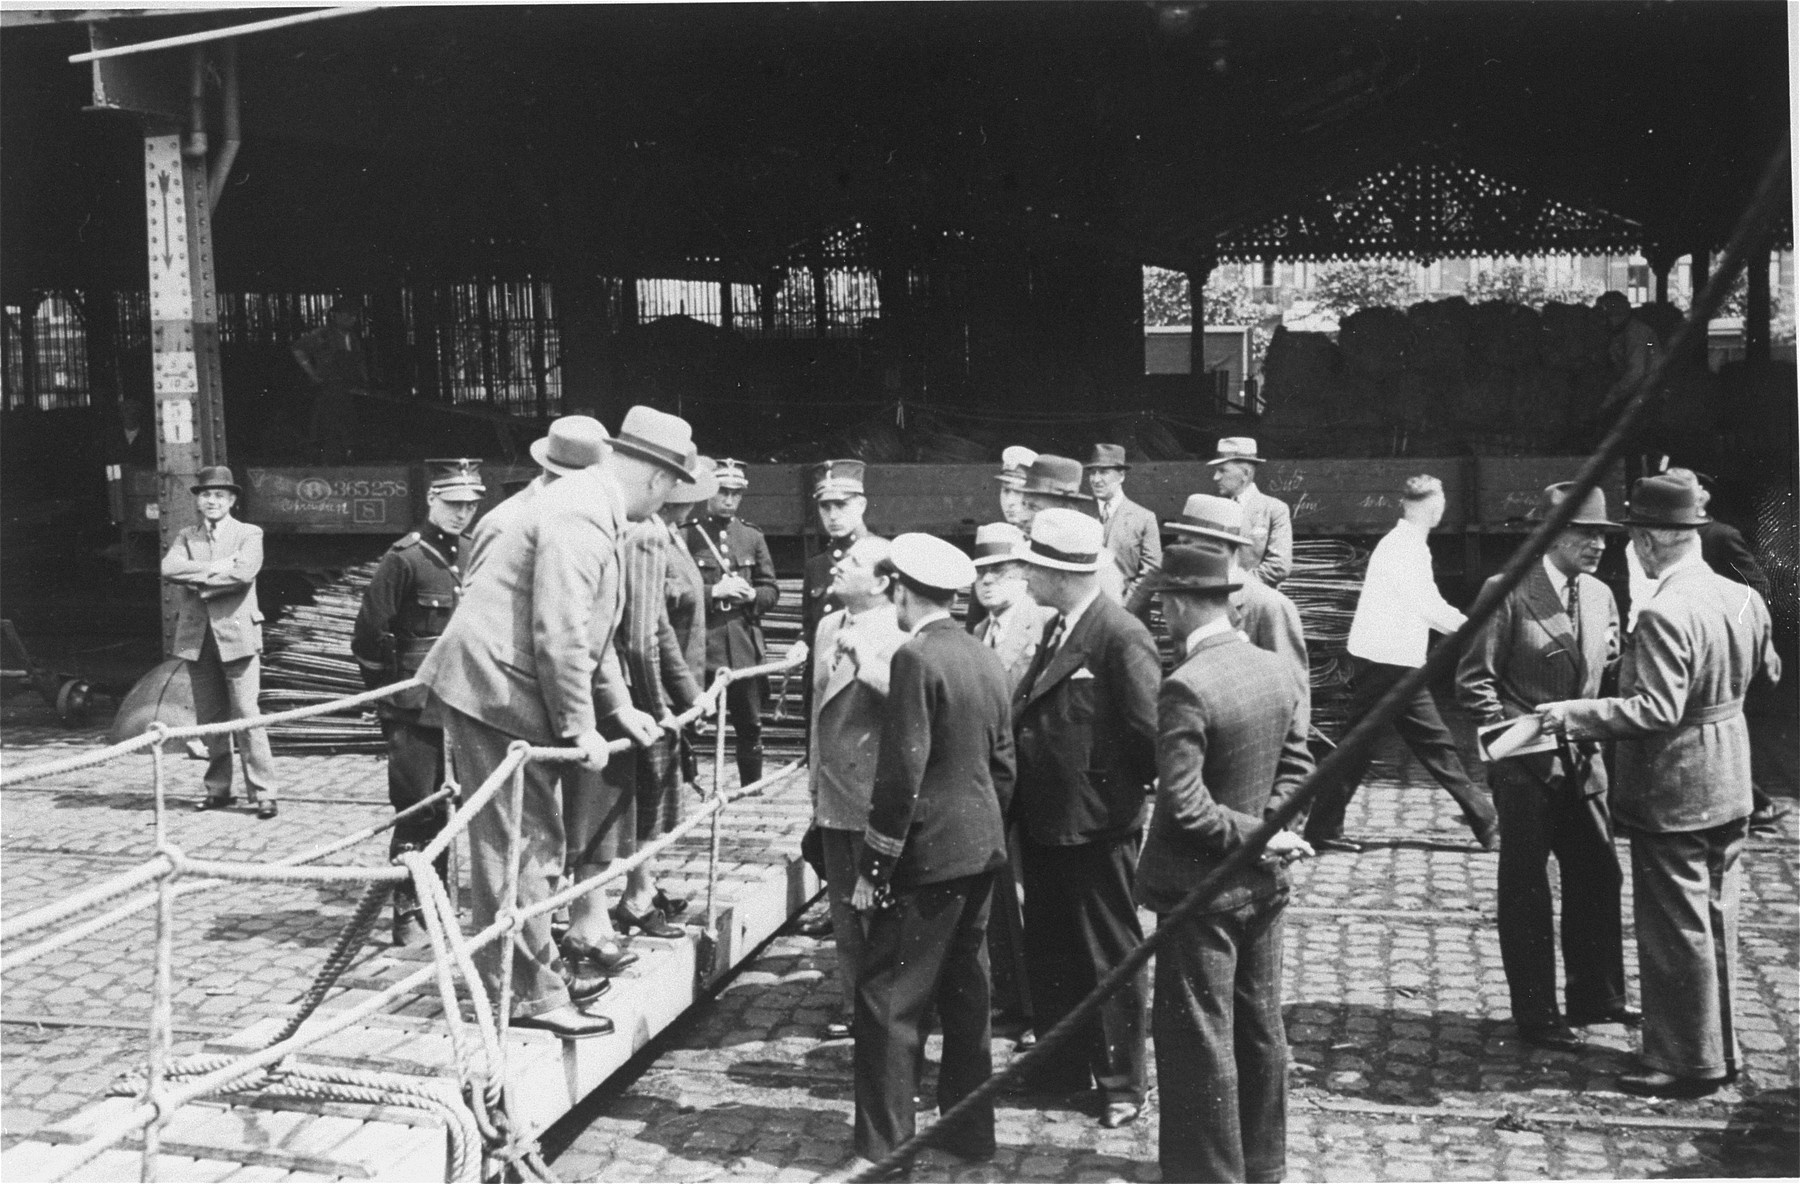 St. Louis Captain Gustav Schroeder negotiates landing permits for the passengers with Belgian officials in the port of Antwerp.